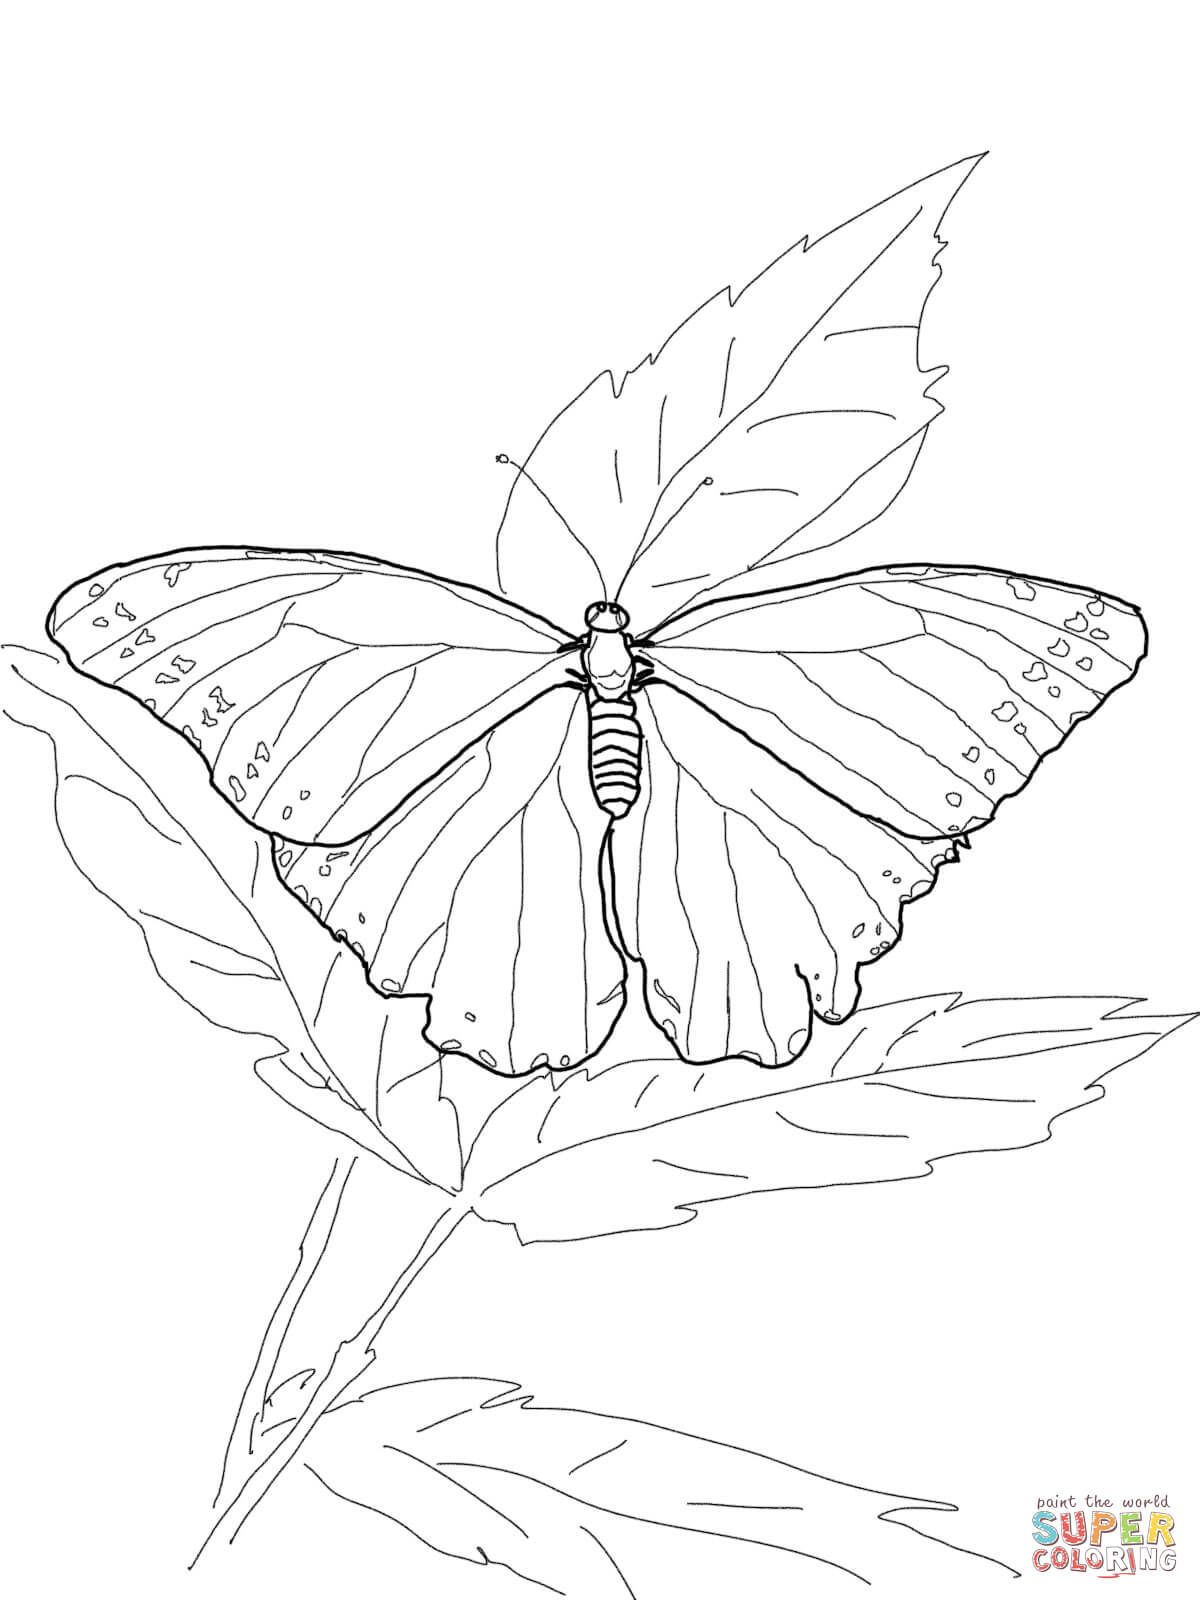 Ulysses Butterfly coloring #1, Download drawings